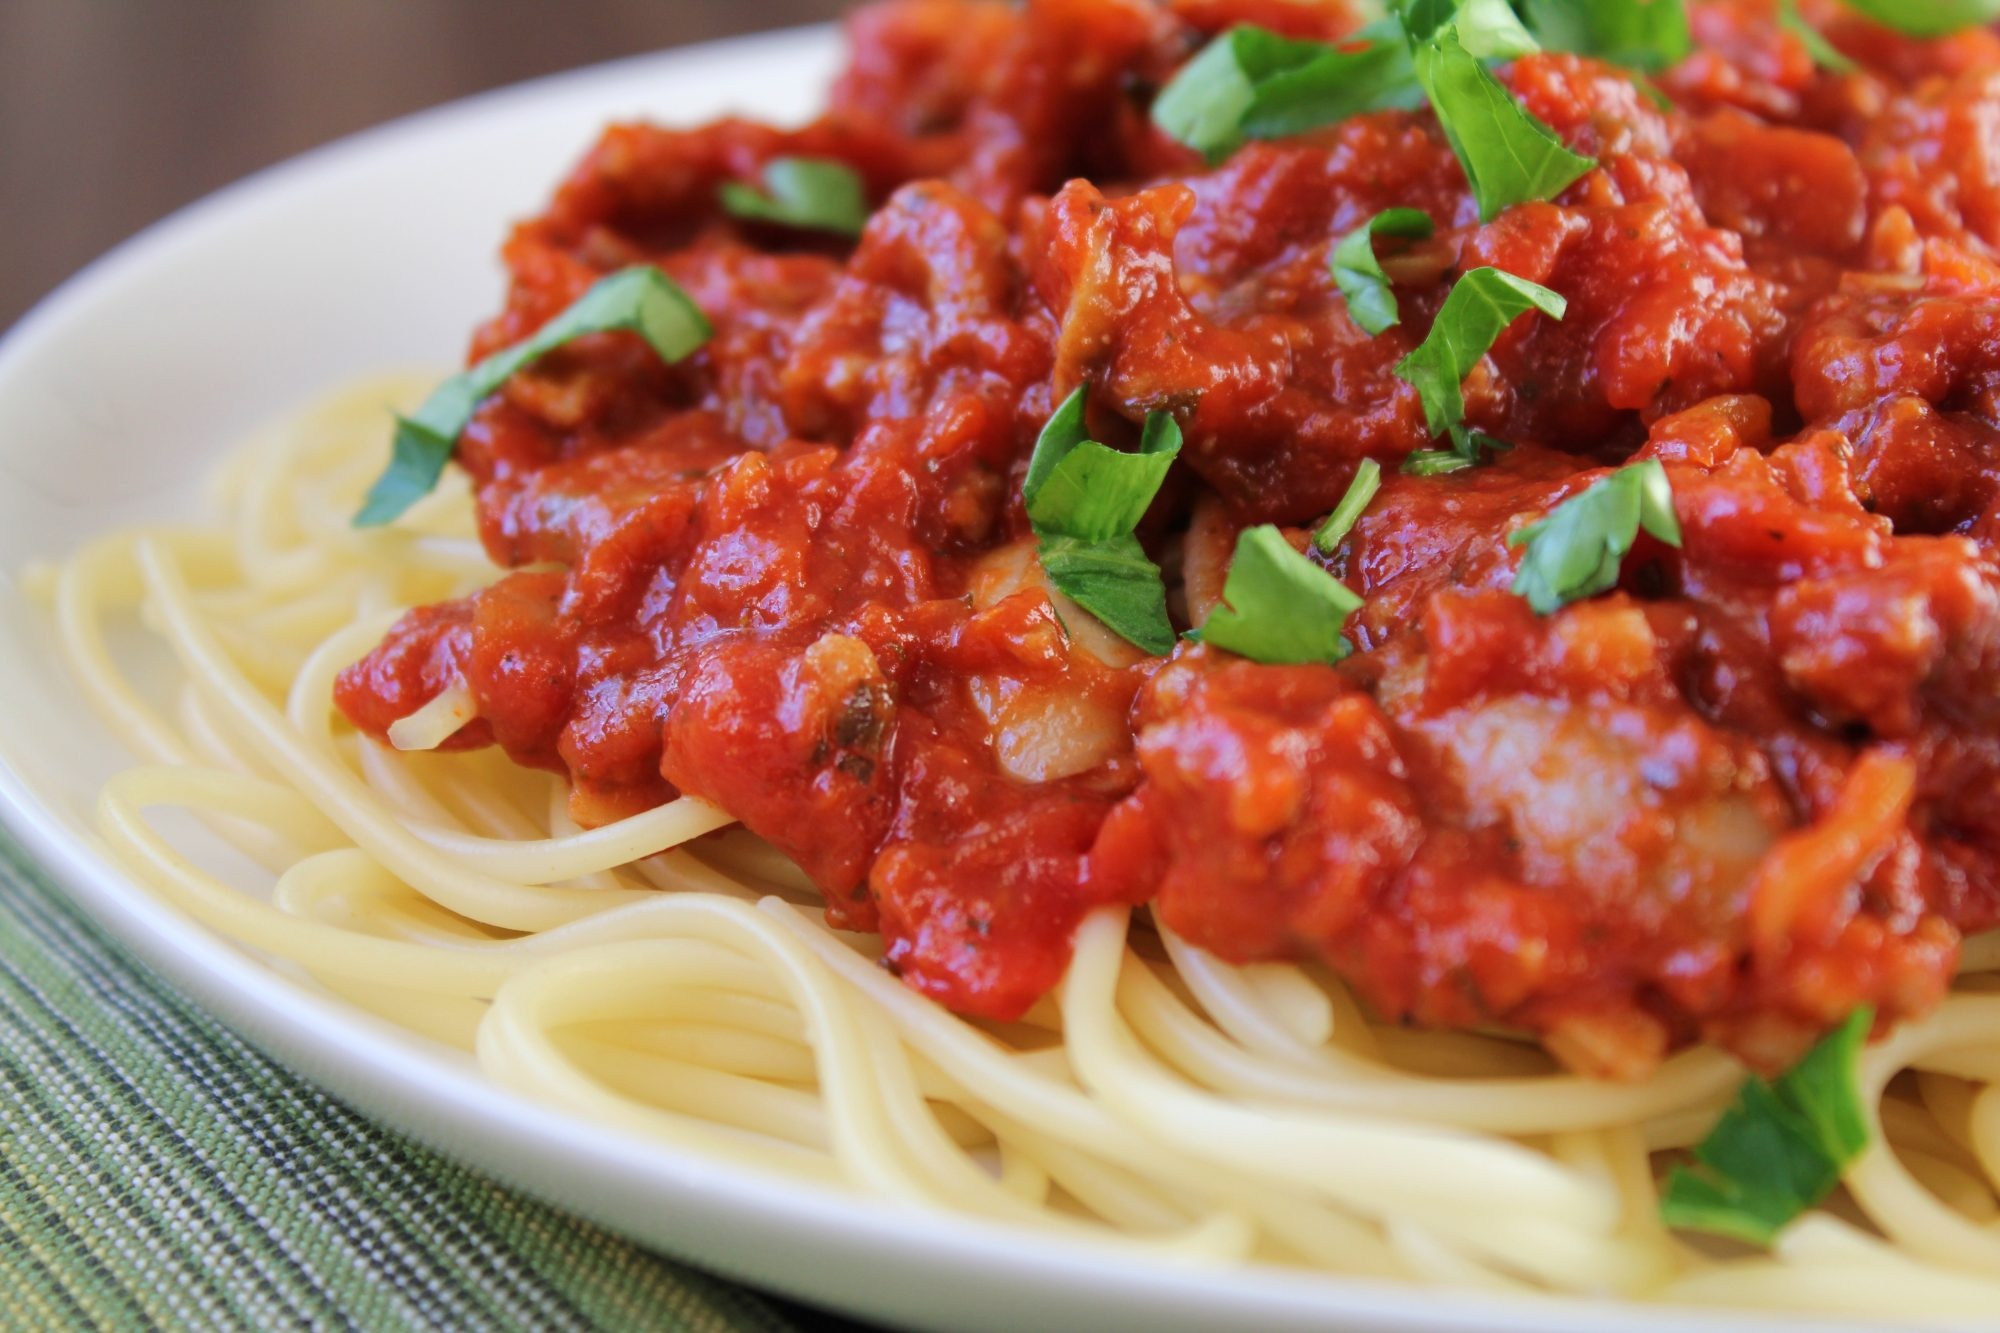 a closeup of thick tomato sauce on top of spaghetti on a white plate, garnished with chopped Italian parsley